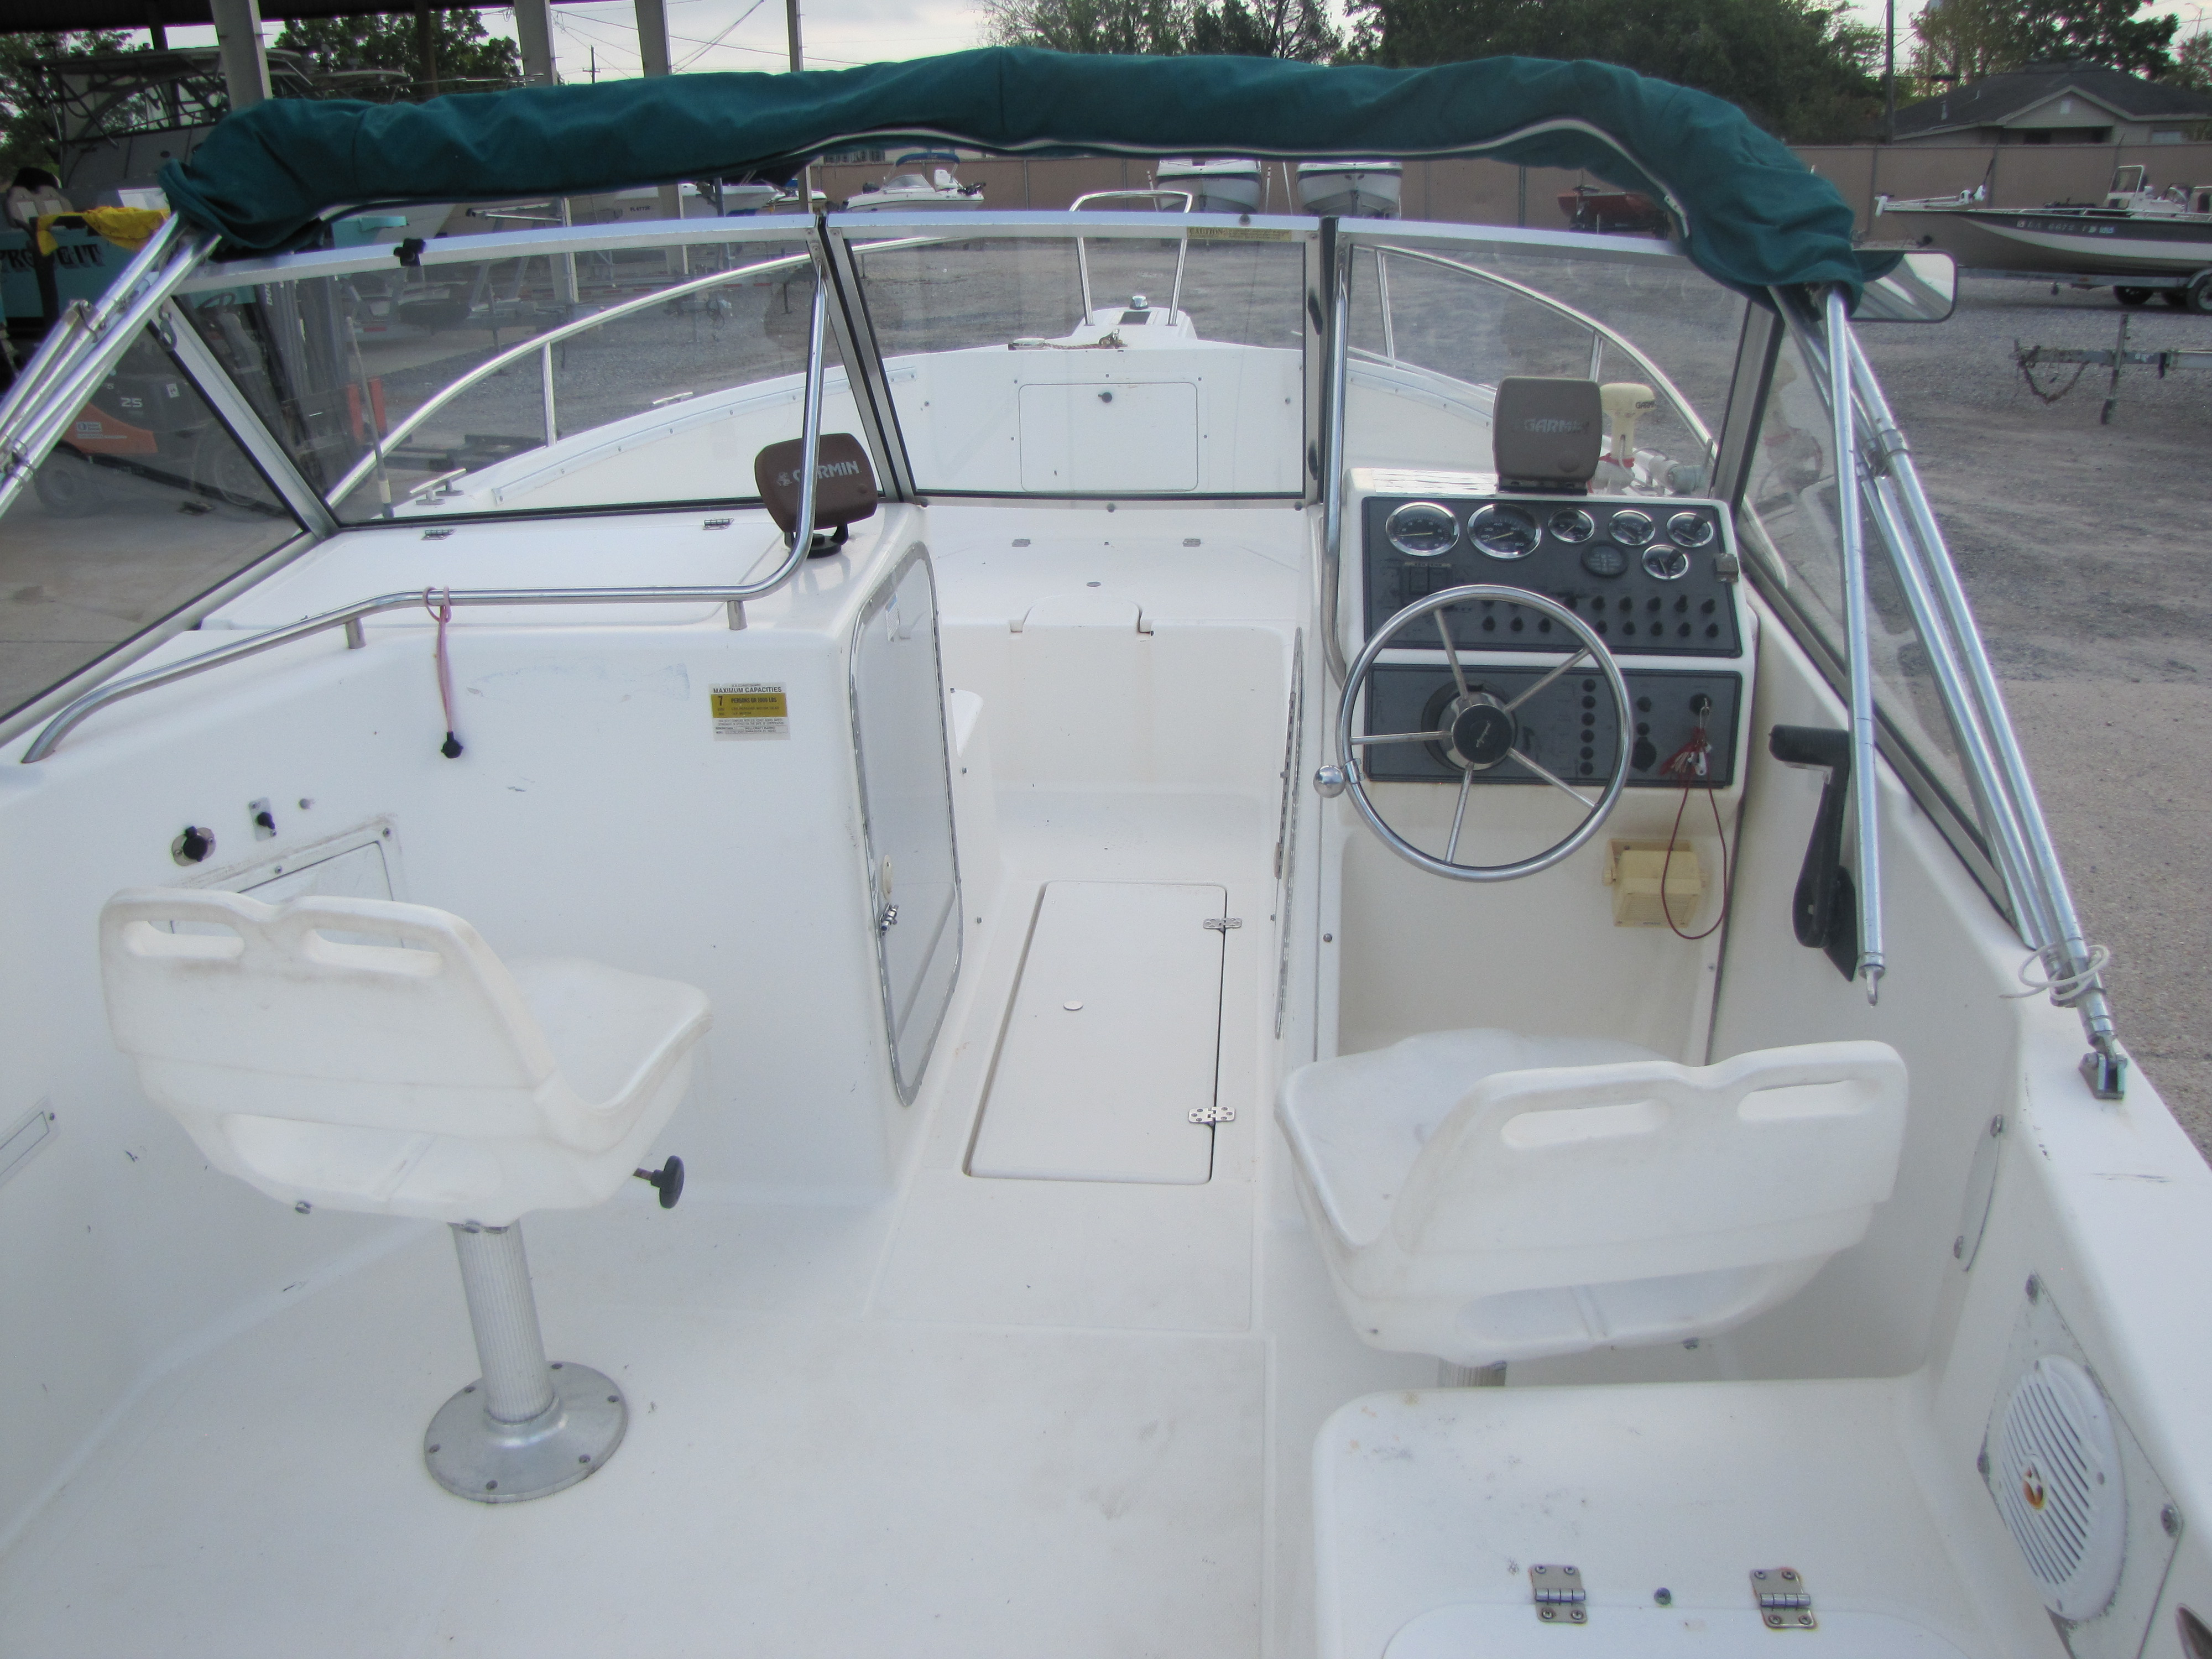 2000 Aquasport boat for sale, model of the boat is 215 Osprey Sport & Image # 11 of 21